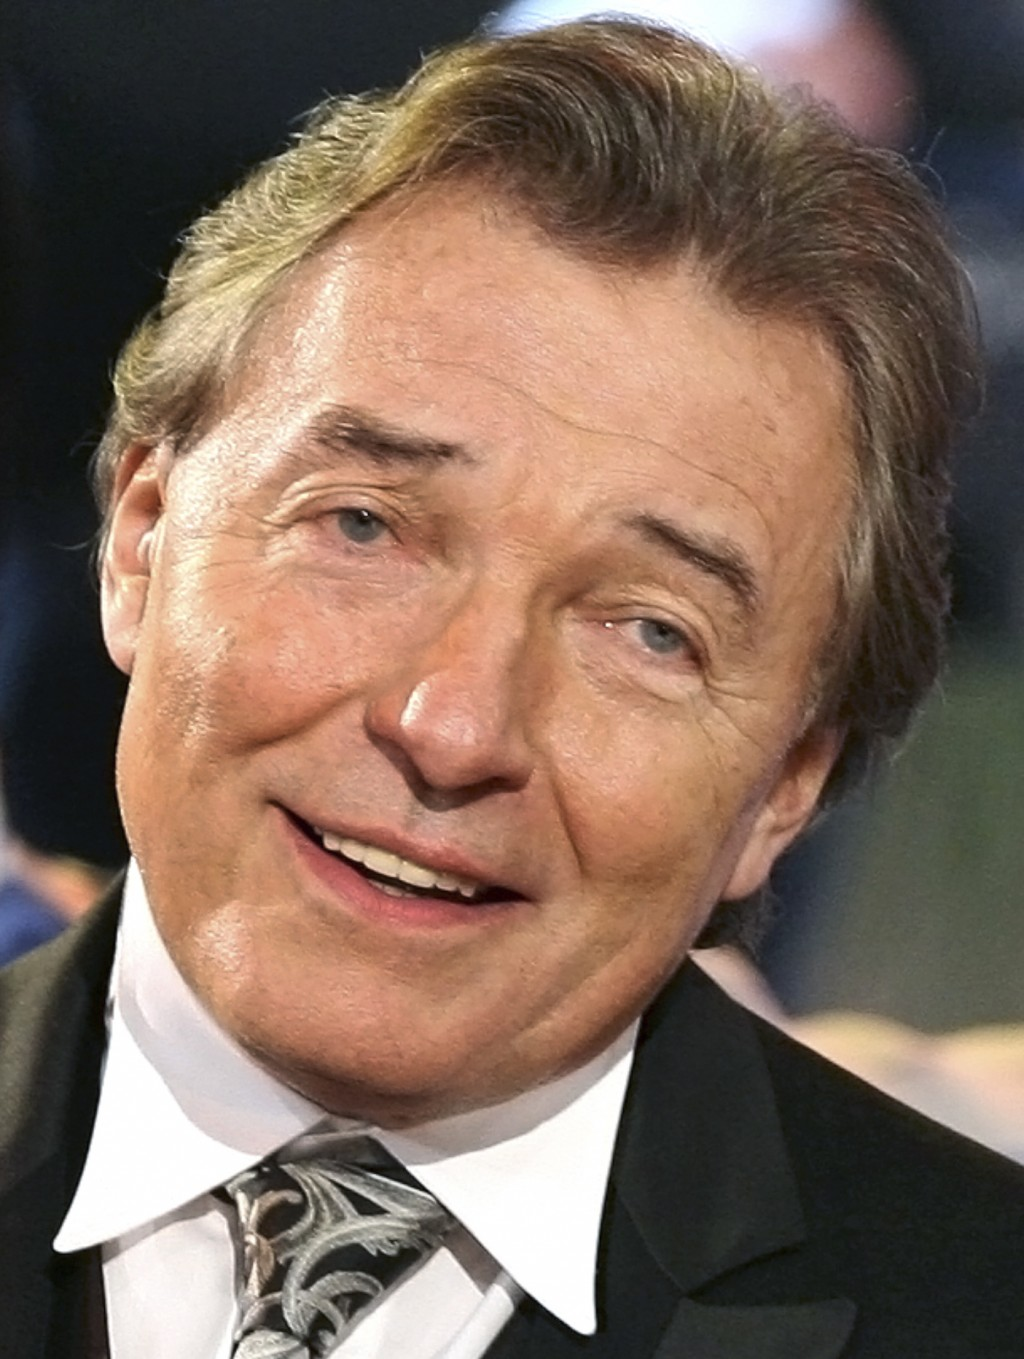 File--- Picture taken March 17, 2007 Czech singer Karel Gott performs during the dress rehearsal of a German TV show in Riesa, eastern Germany. Gott d...